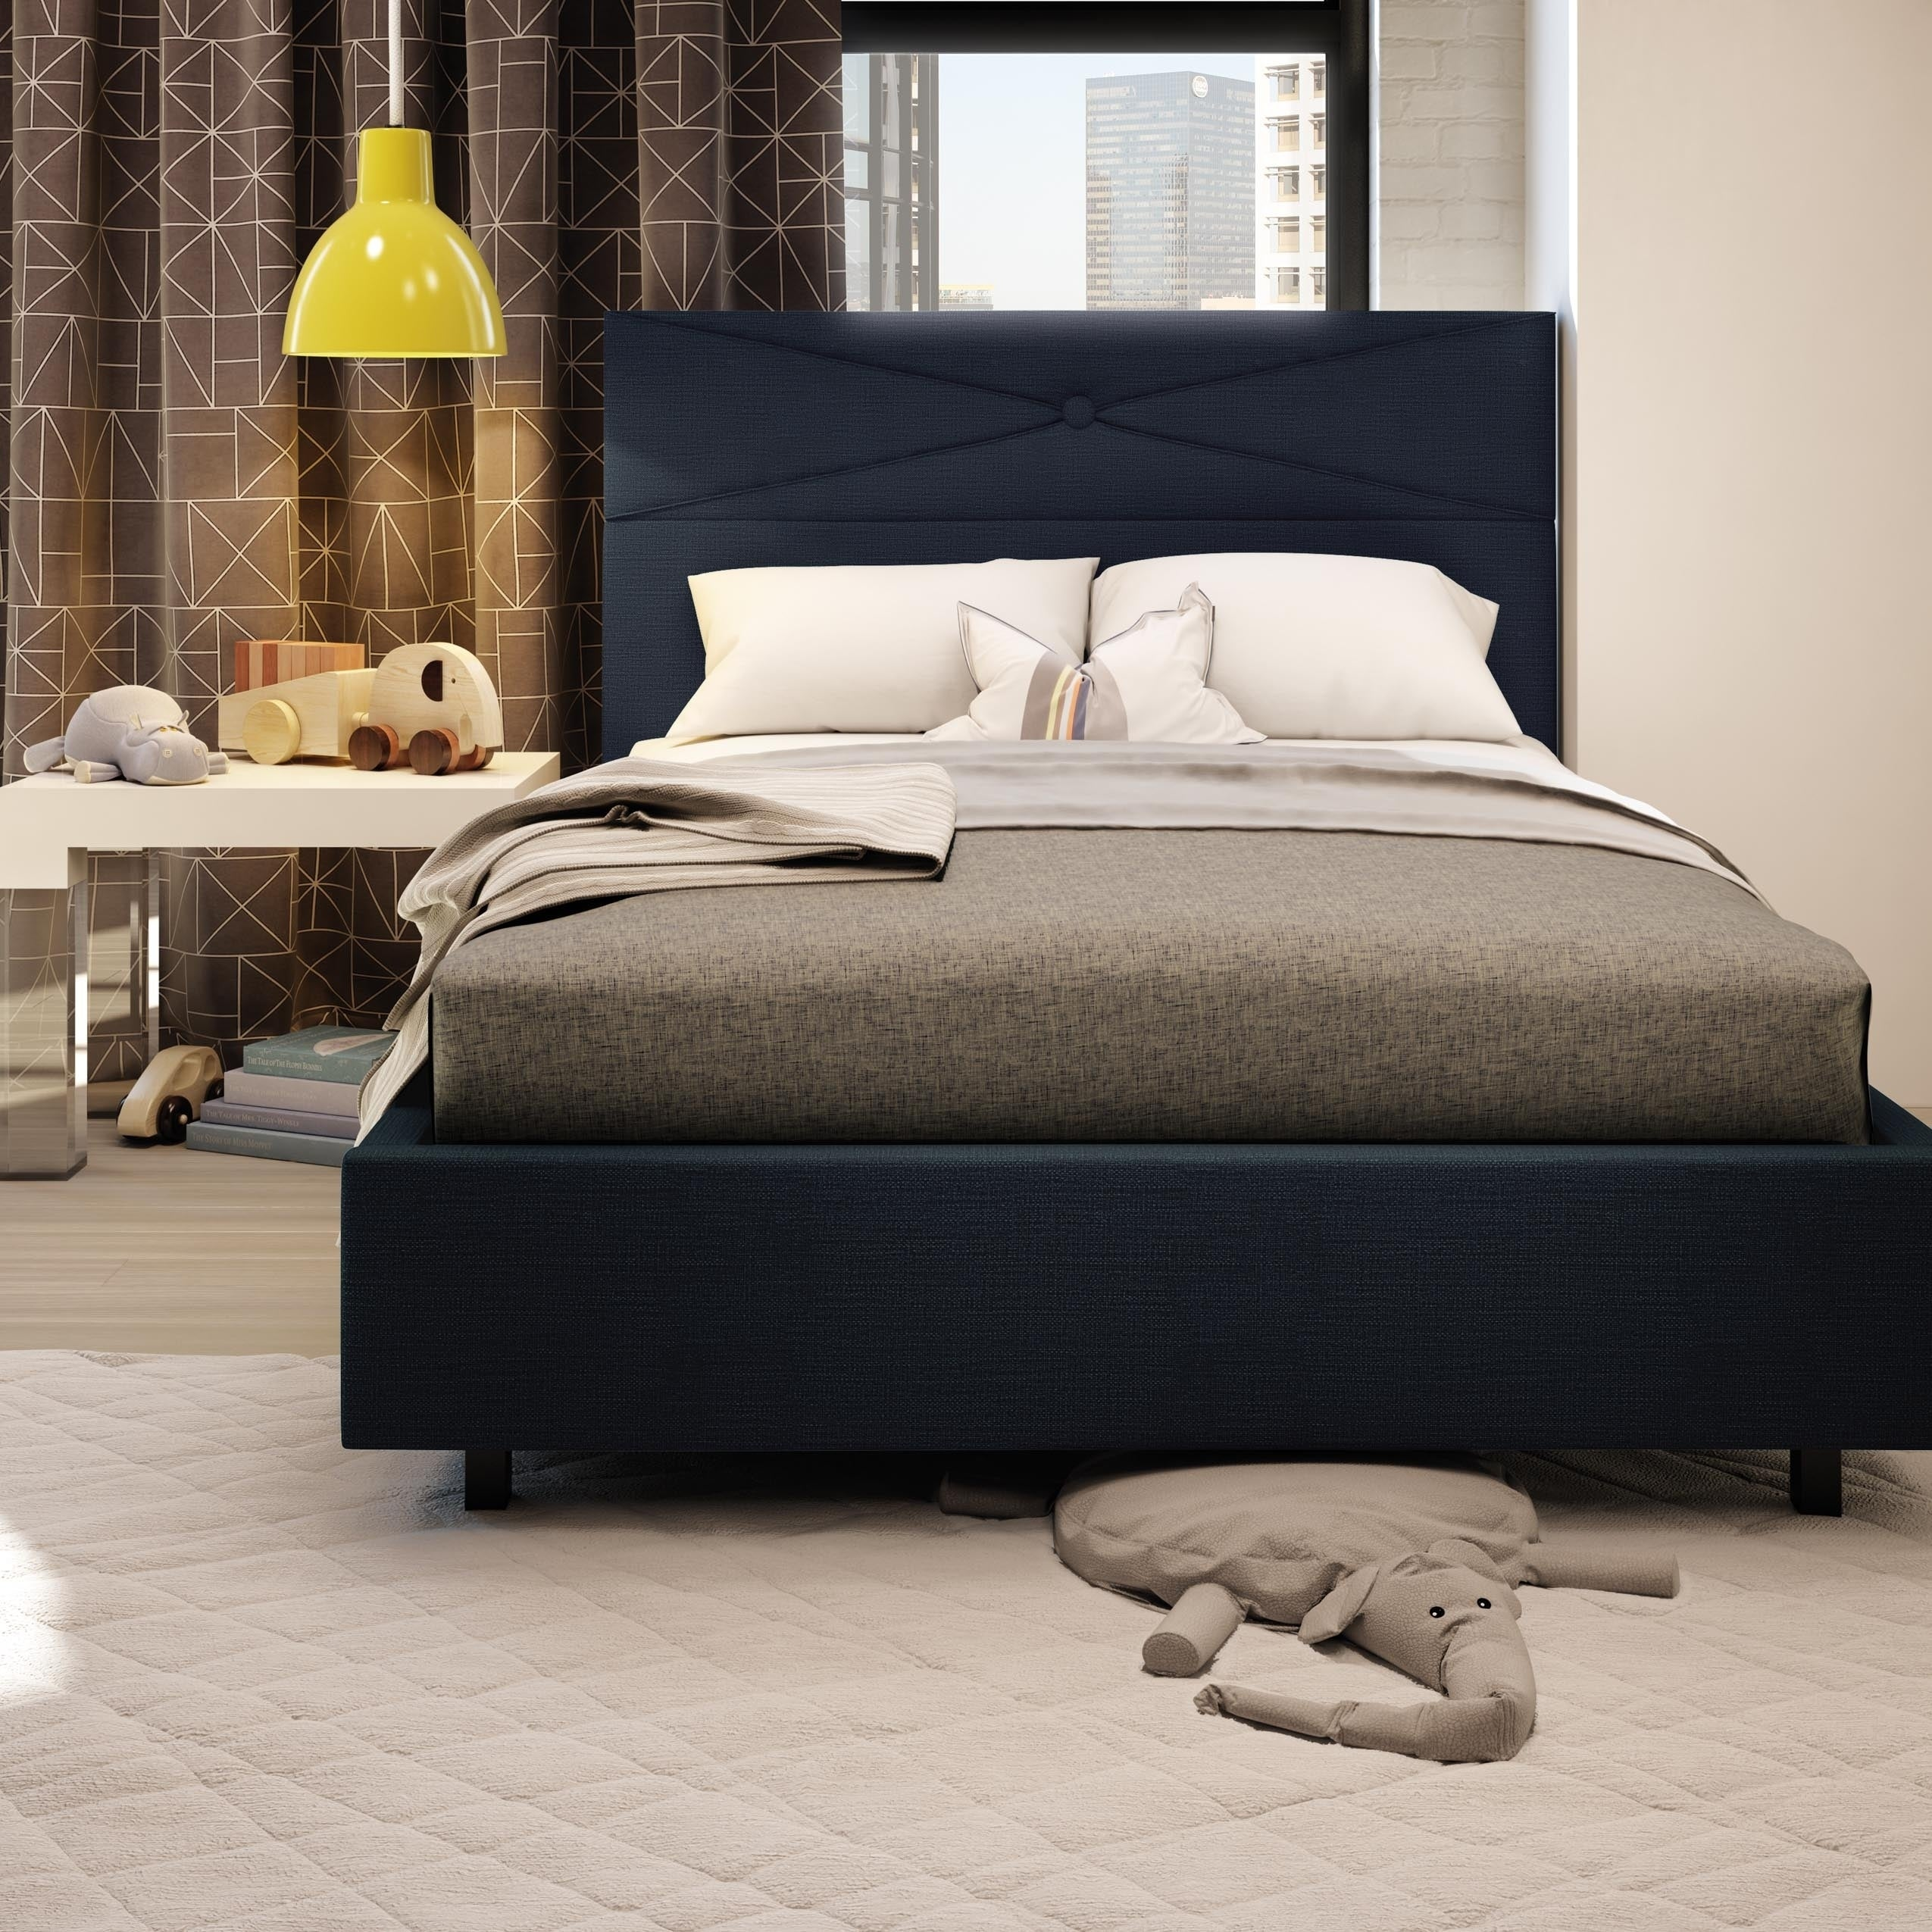 Details About Amisco Diamond Metal Upholstered Bed